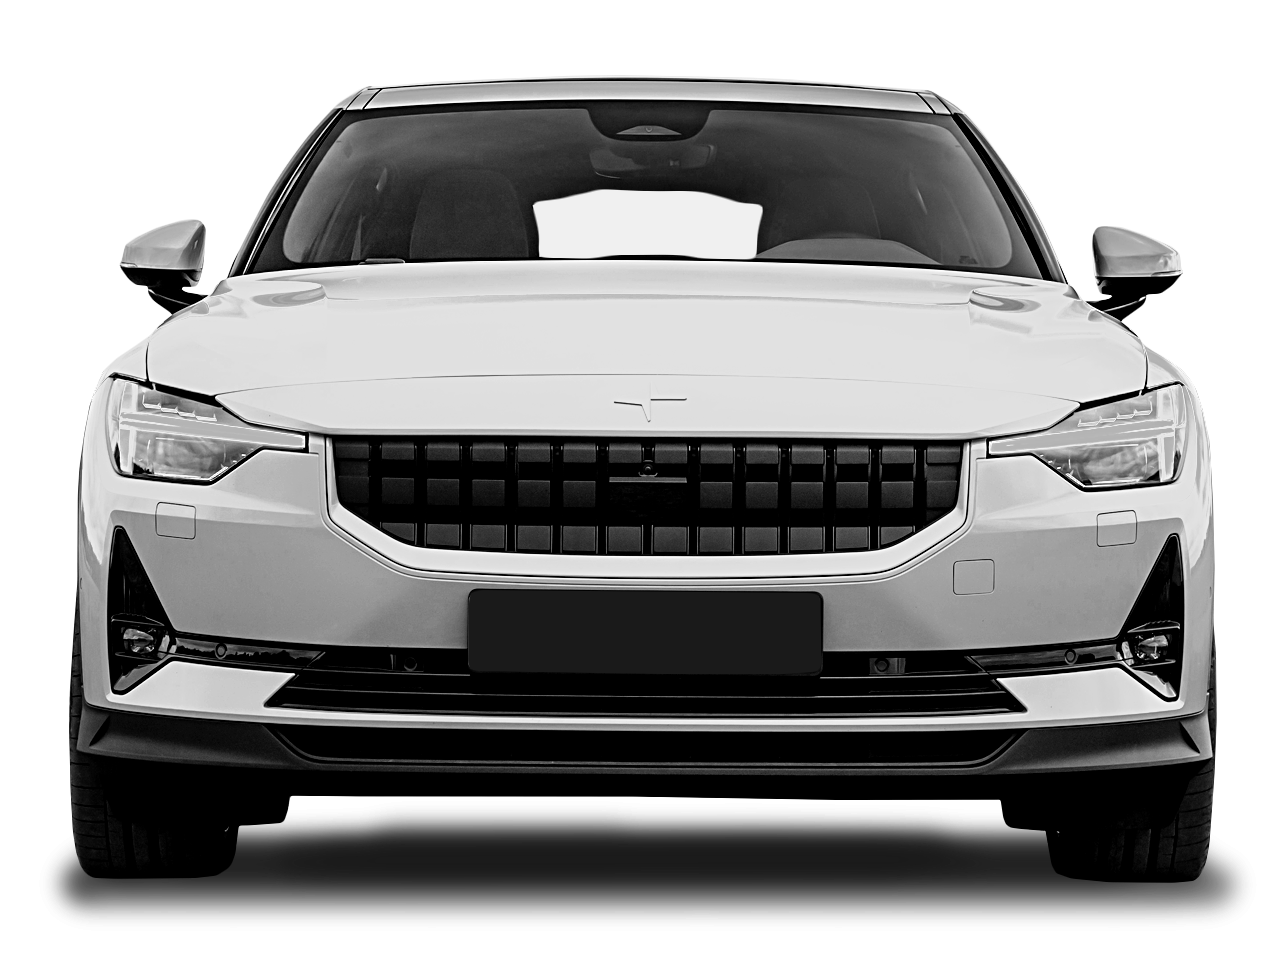 Front view of the Polestar 2